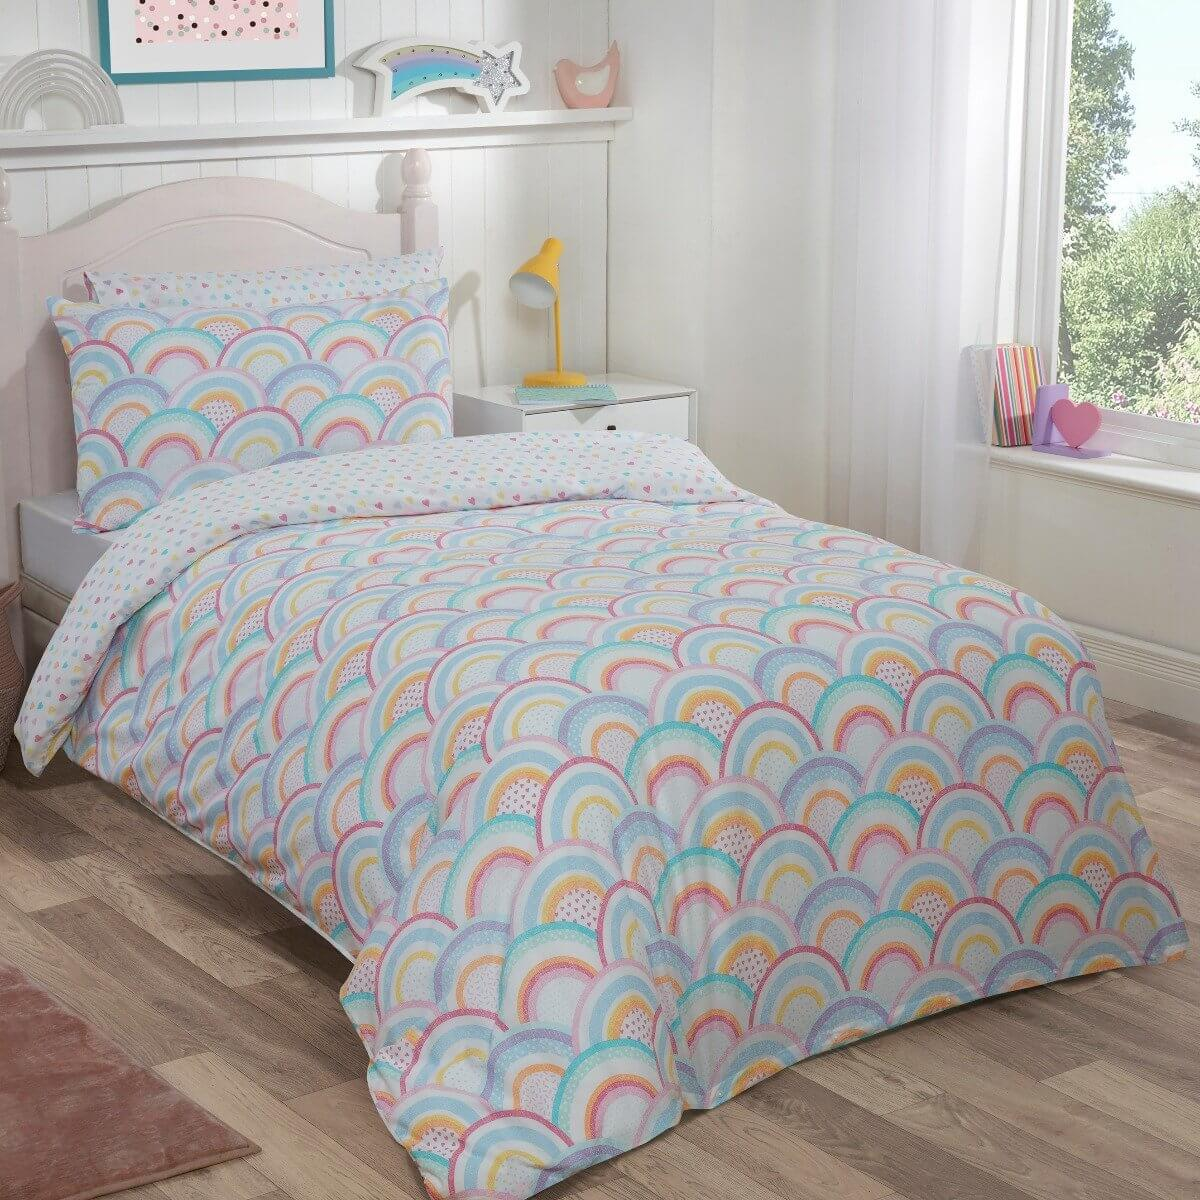 Rainbow Stripes Duvet Cover and Pillowcase Set - Twin Pack